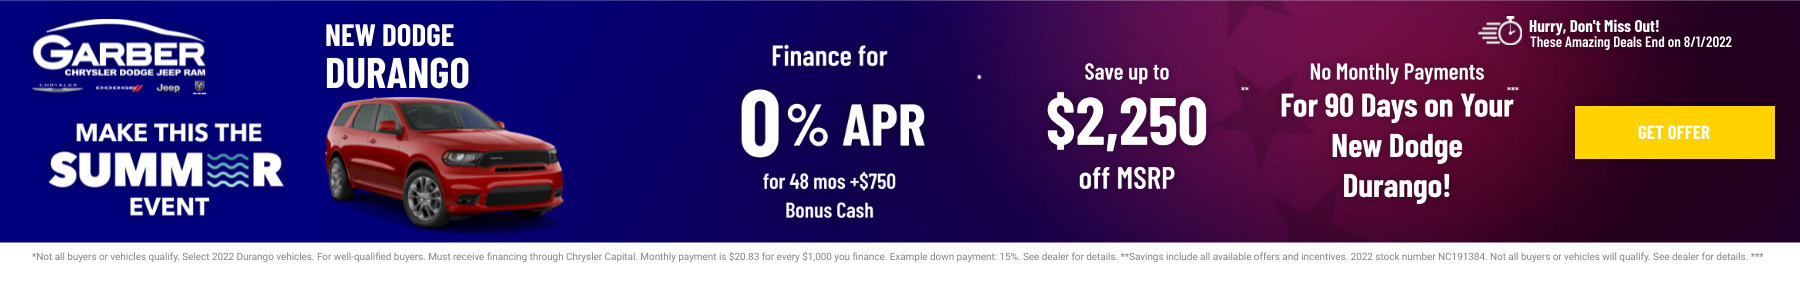 New Dodge Durango Current Deals and Offers in Green Cove Springs, FL